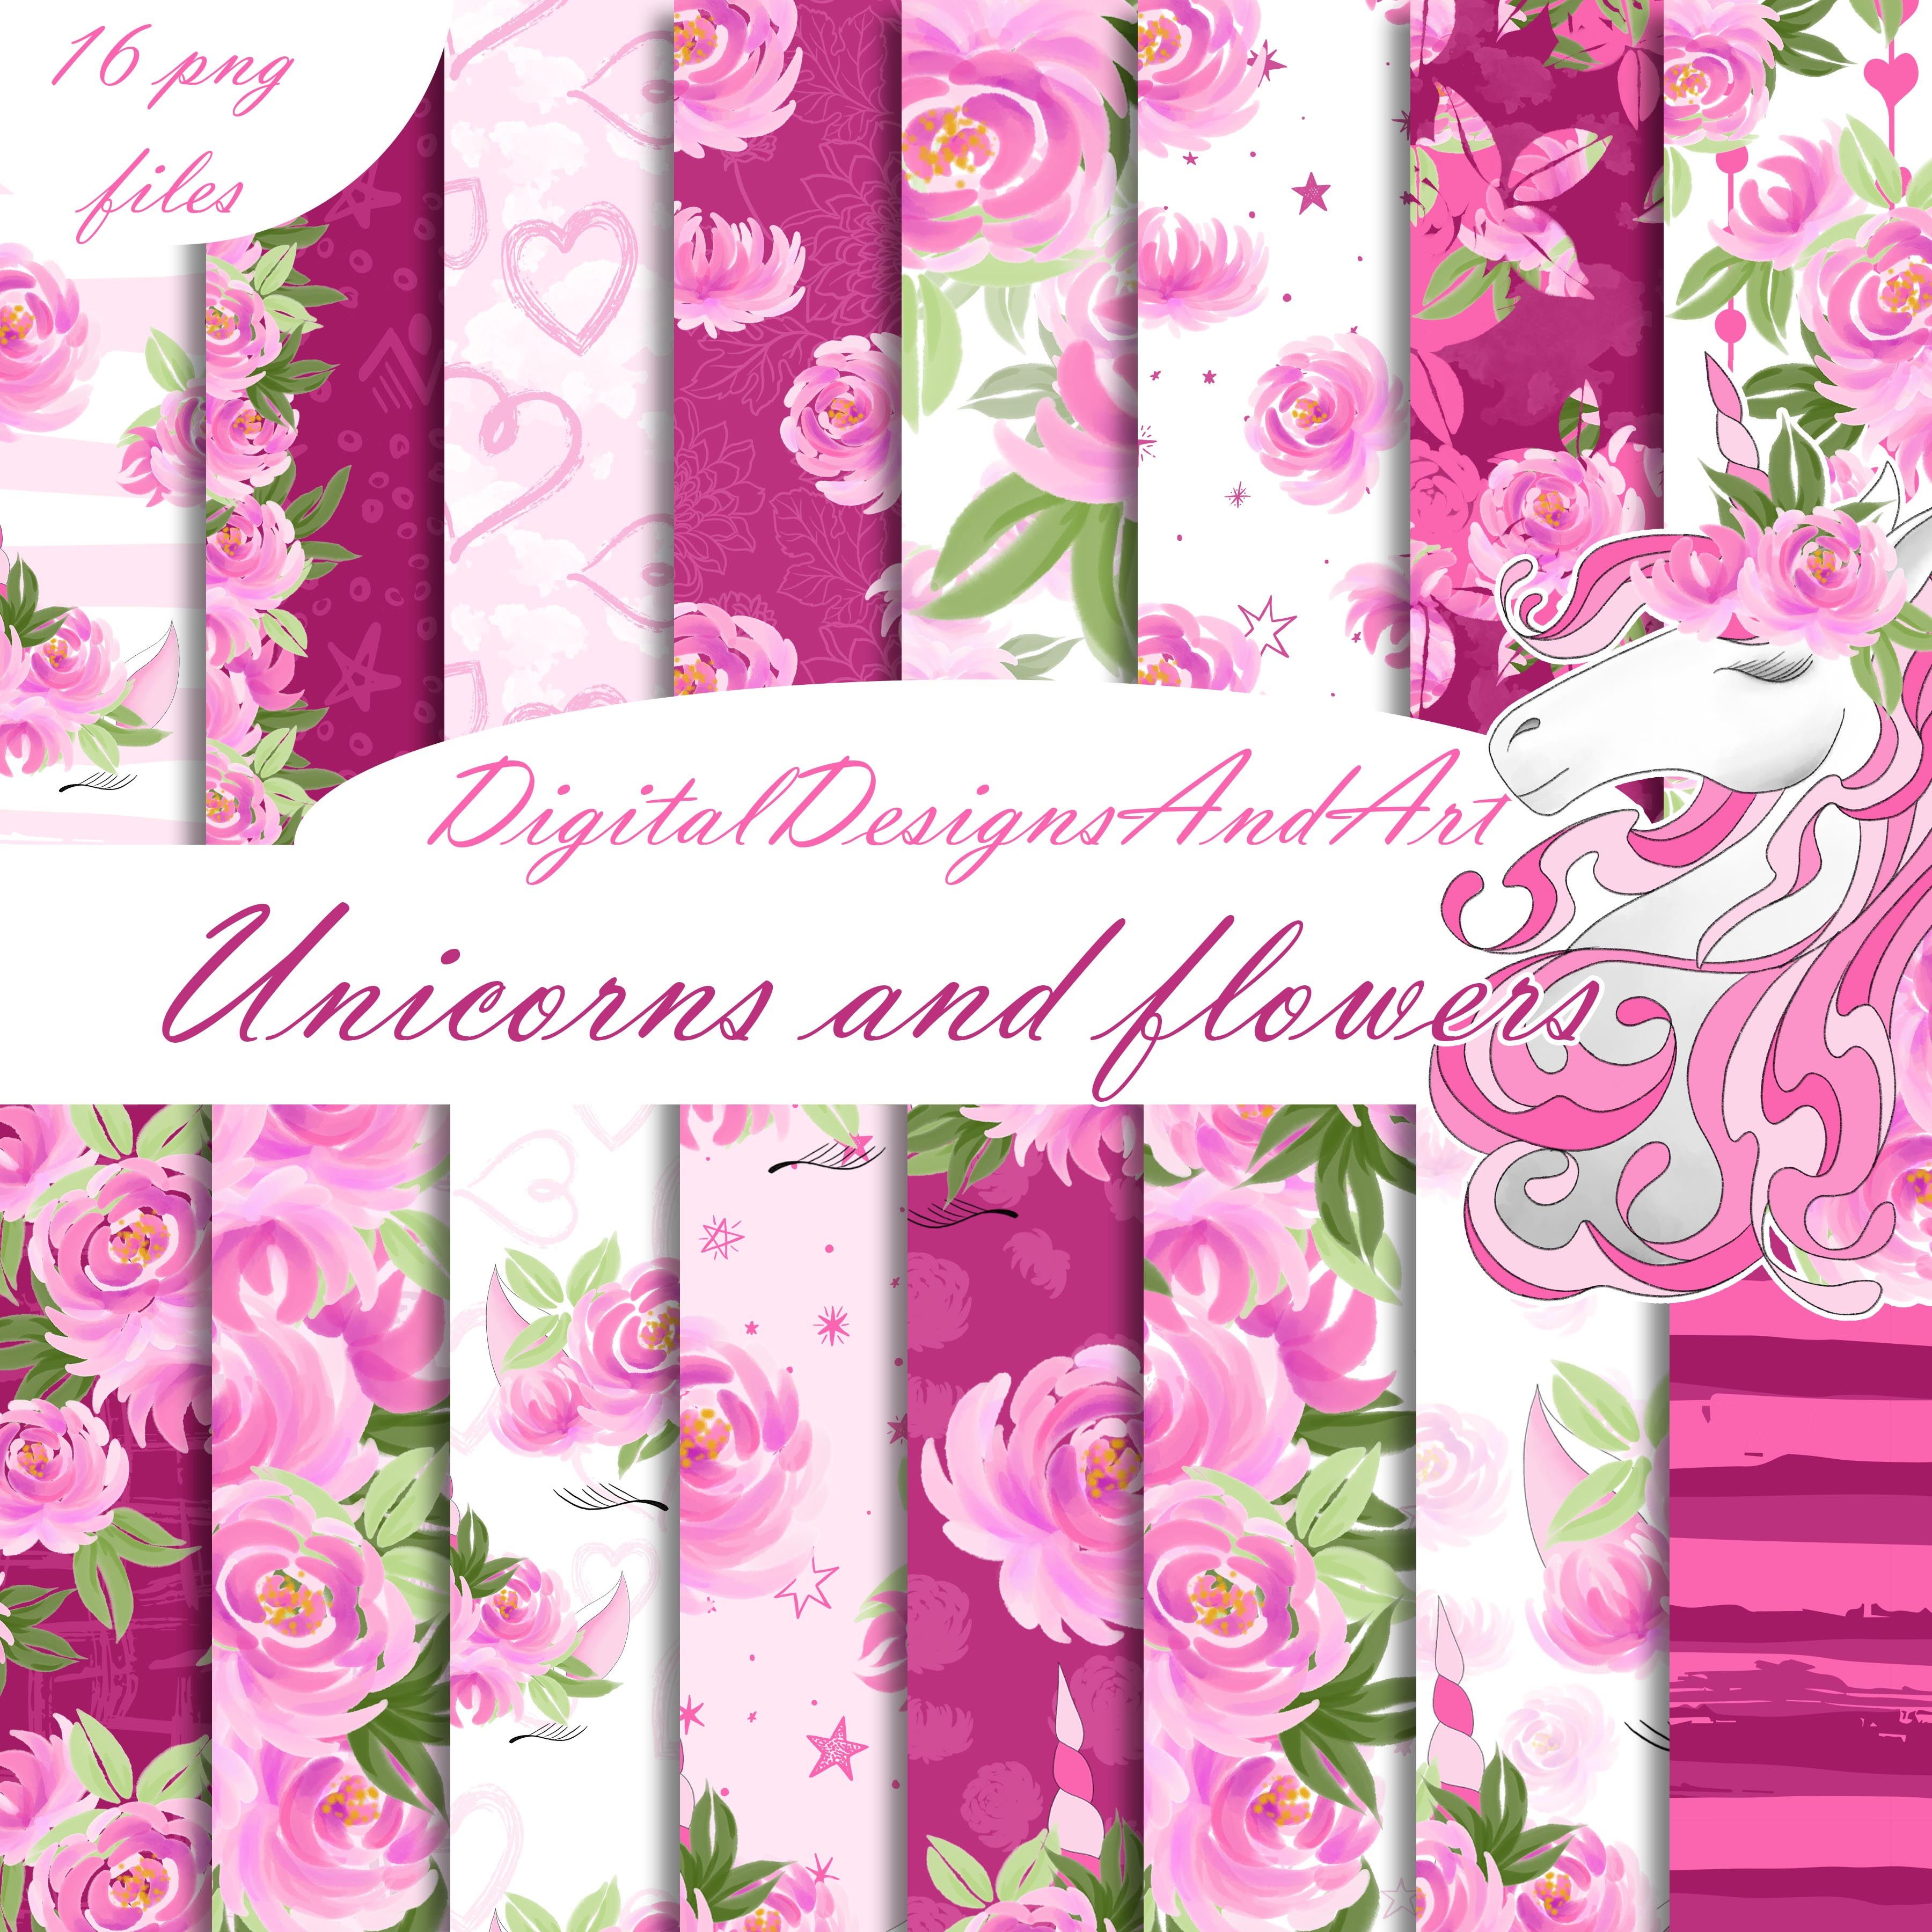 Unicorns and flowers in pink example image 1